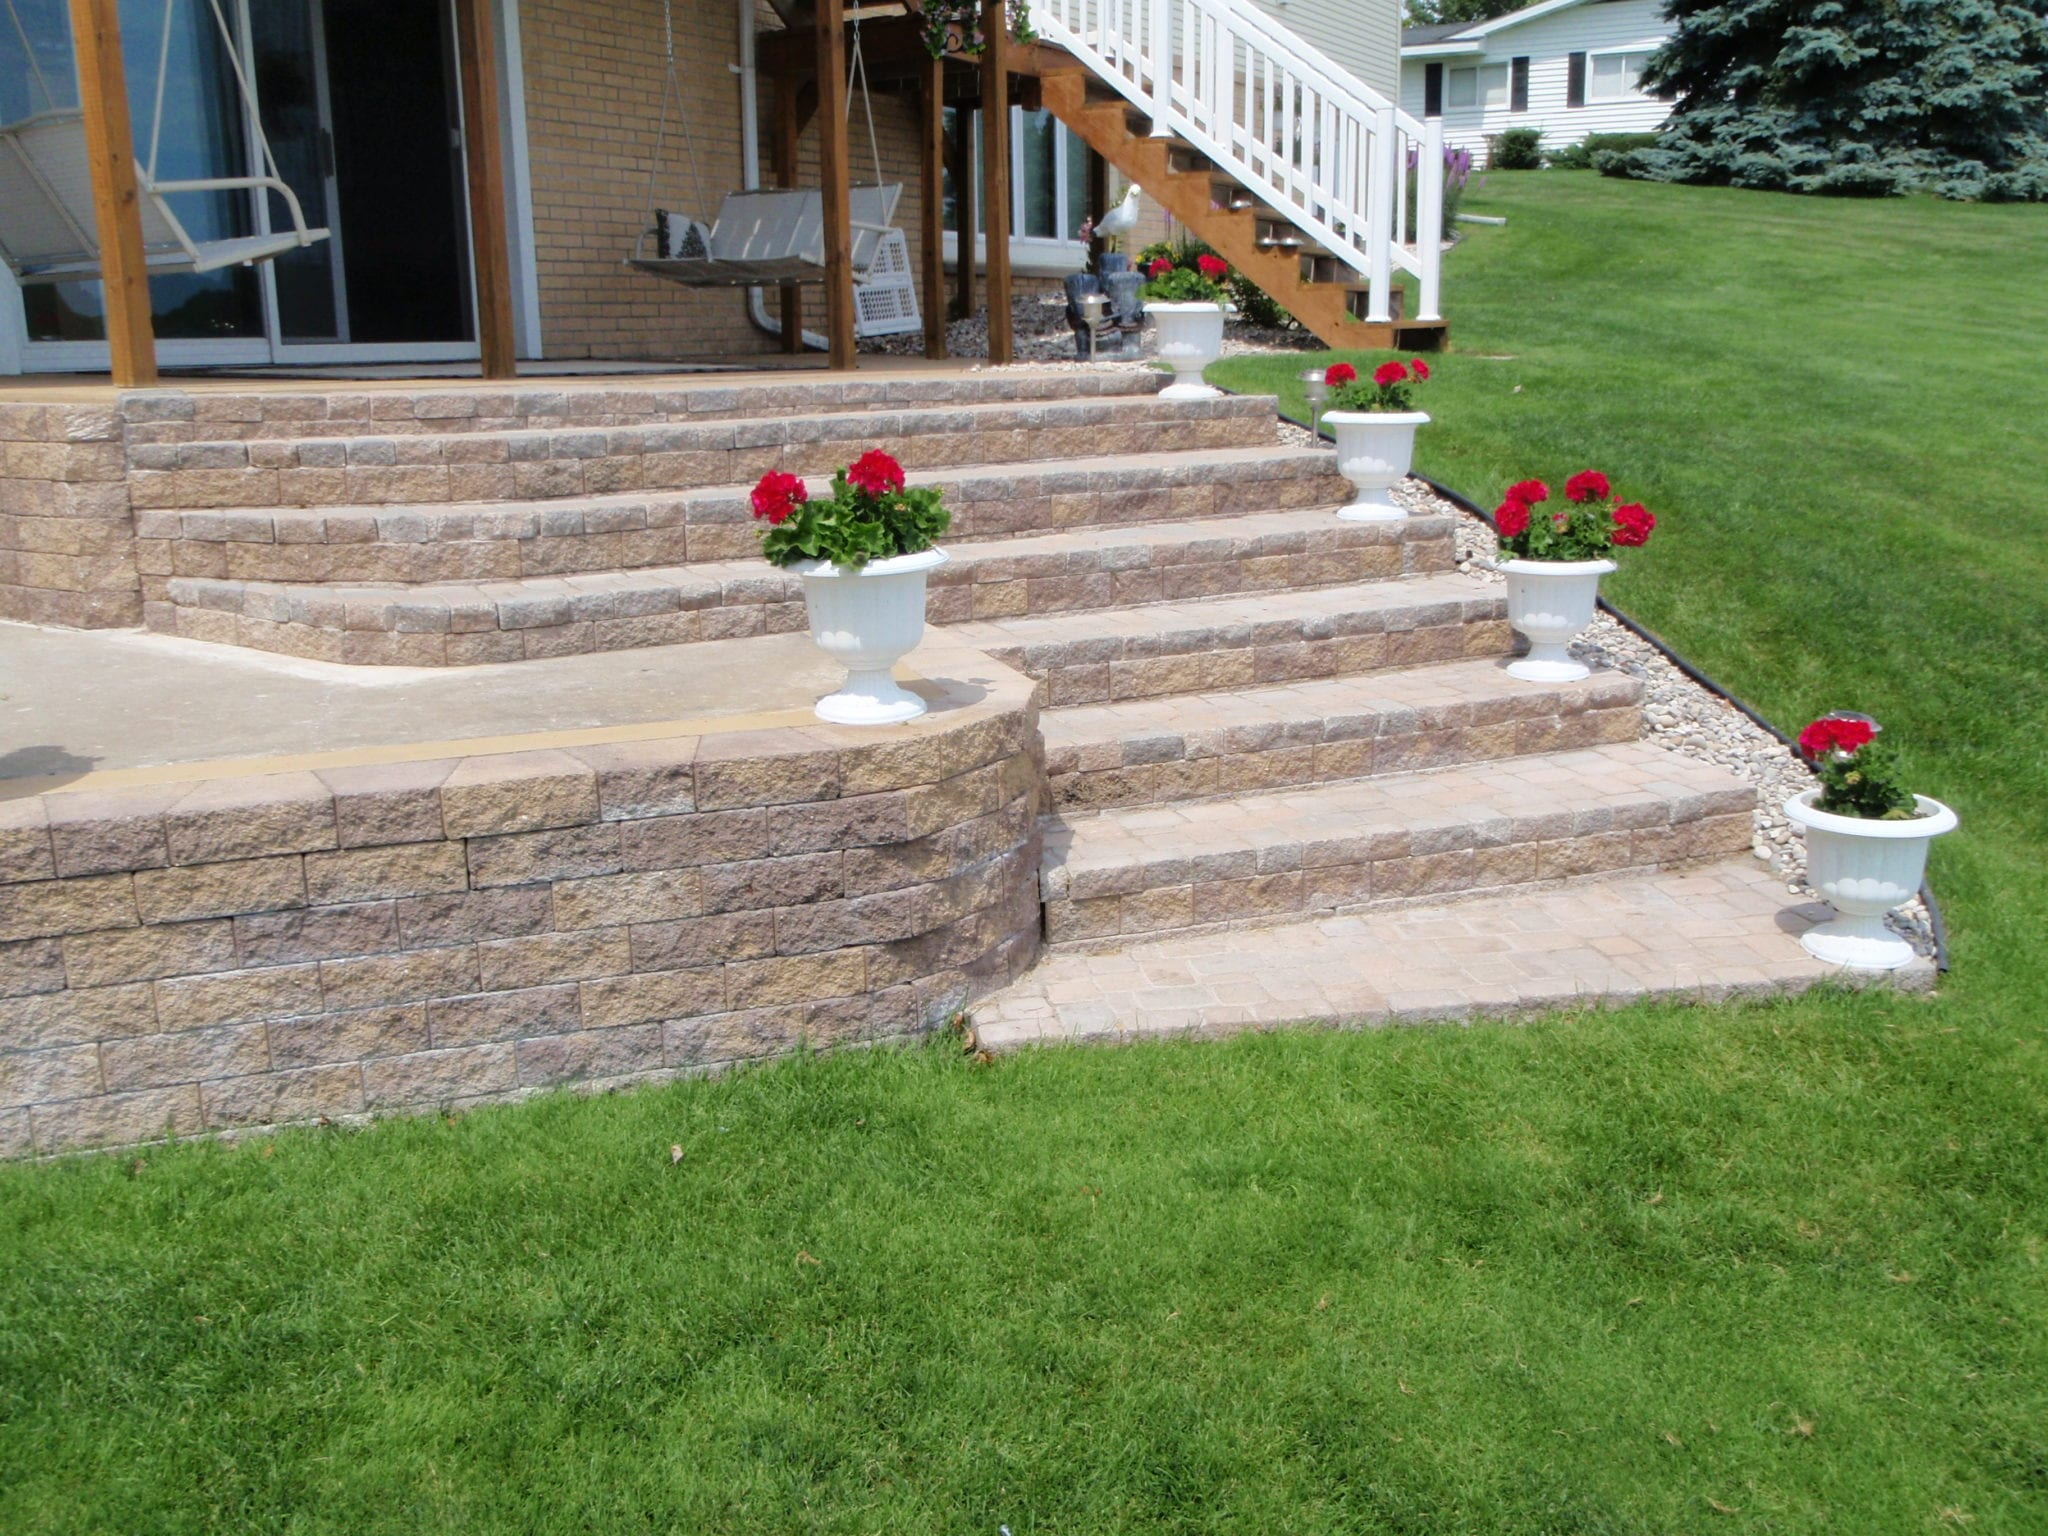 Pyzique Blocks Versatile Option For Curved Retaining Walls And